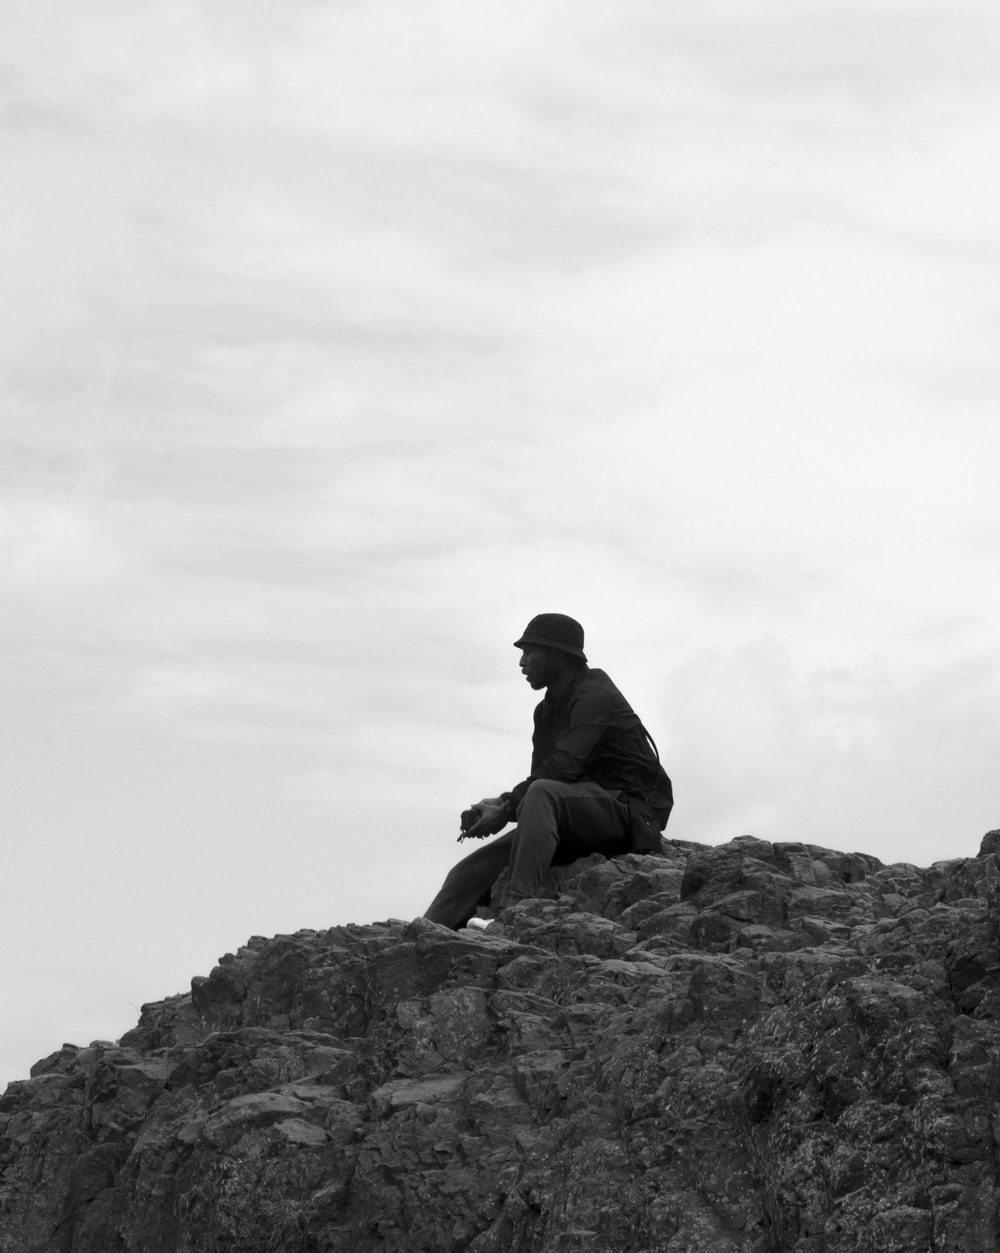 grayscale photo of man sitting on rock